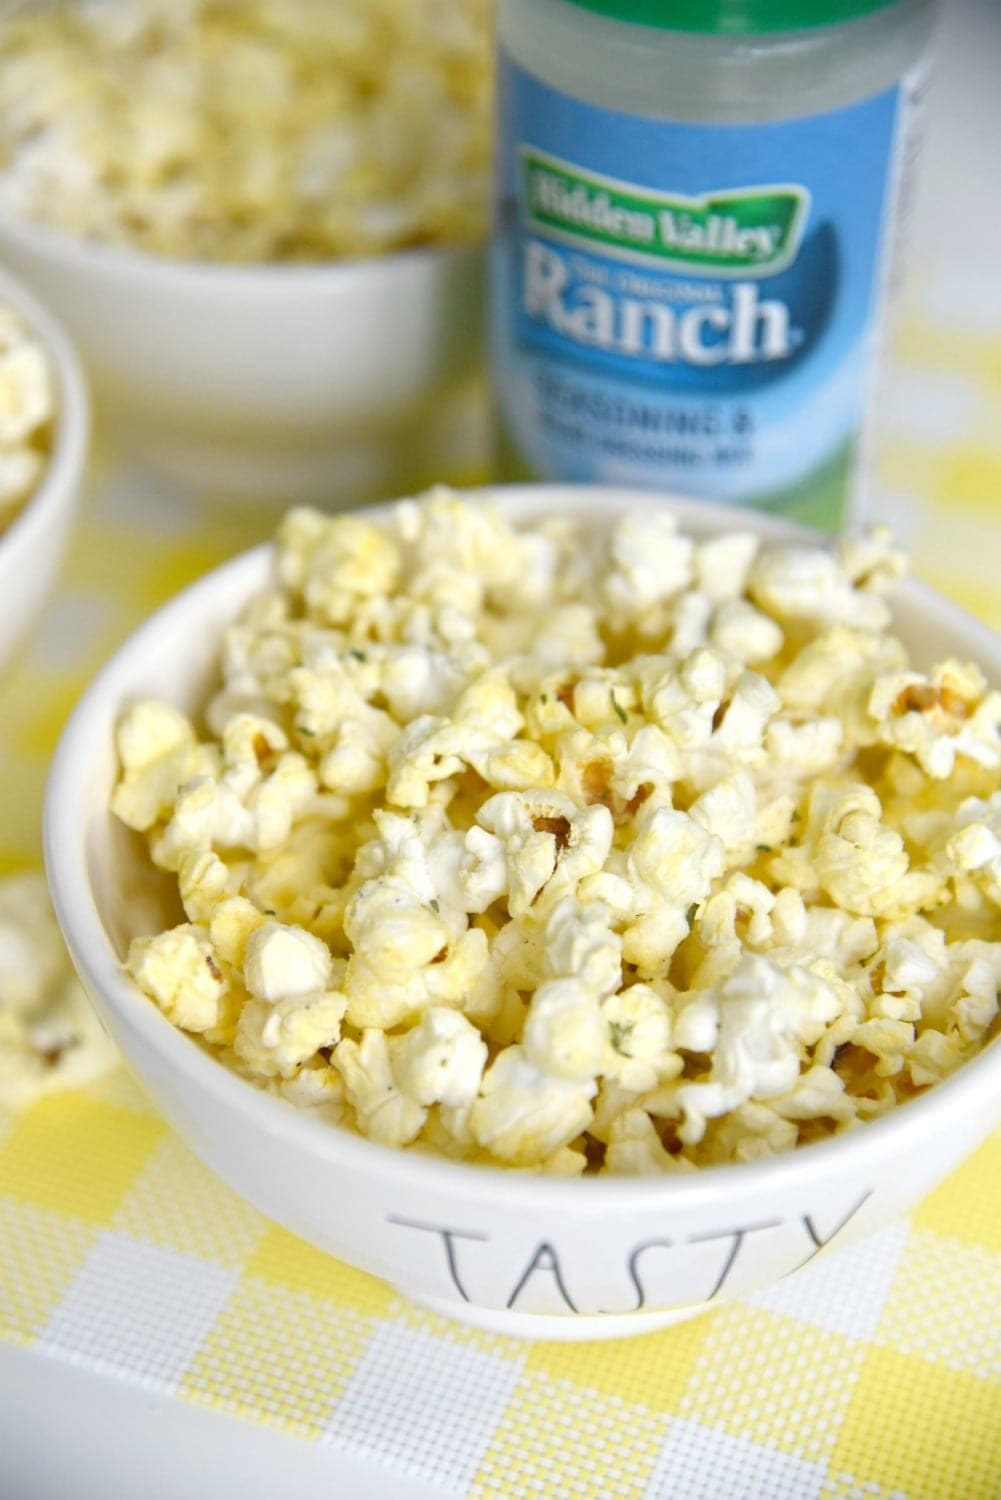 Ranch flavored popcorn